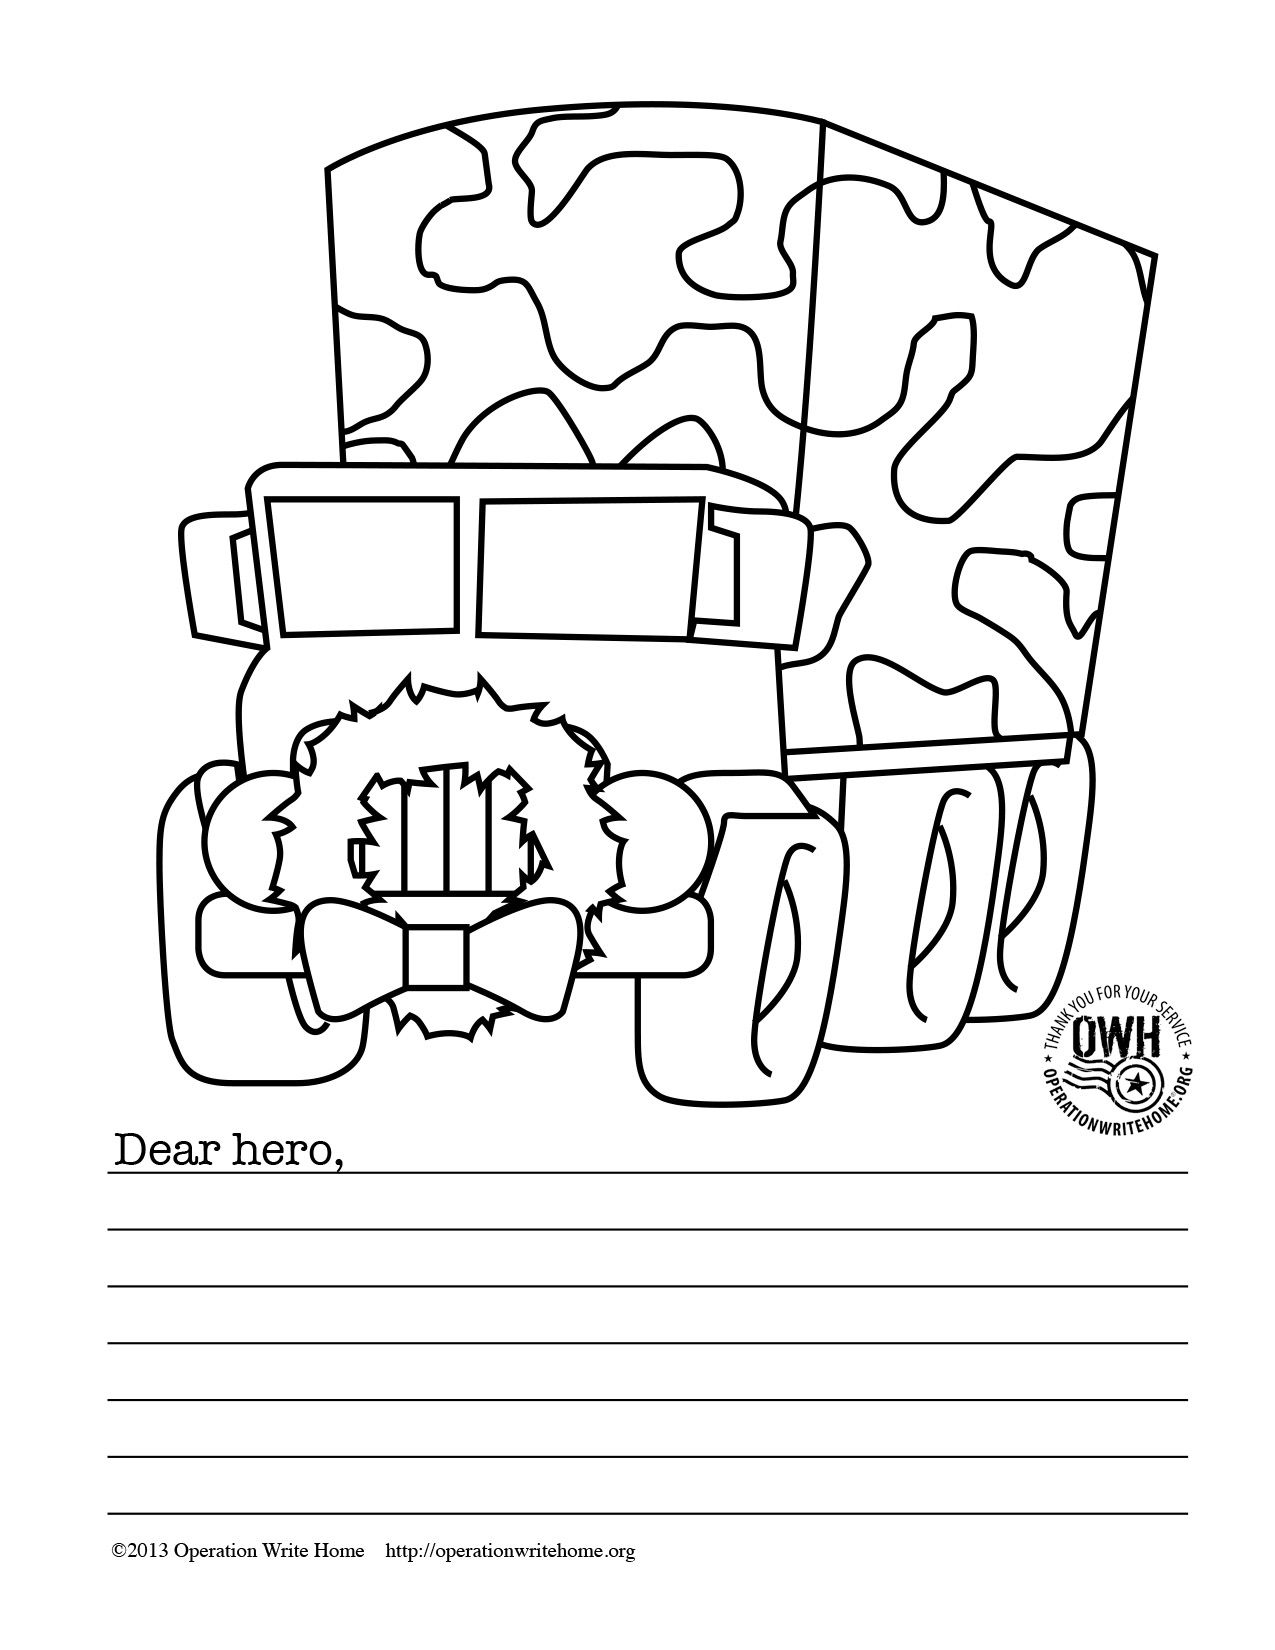 Christmas Coloring Cards Pdf With FREE Military Pages For Operation Write Home